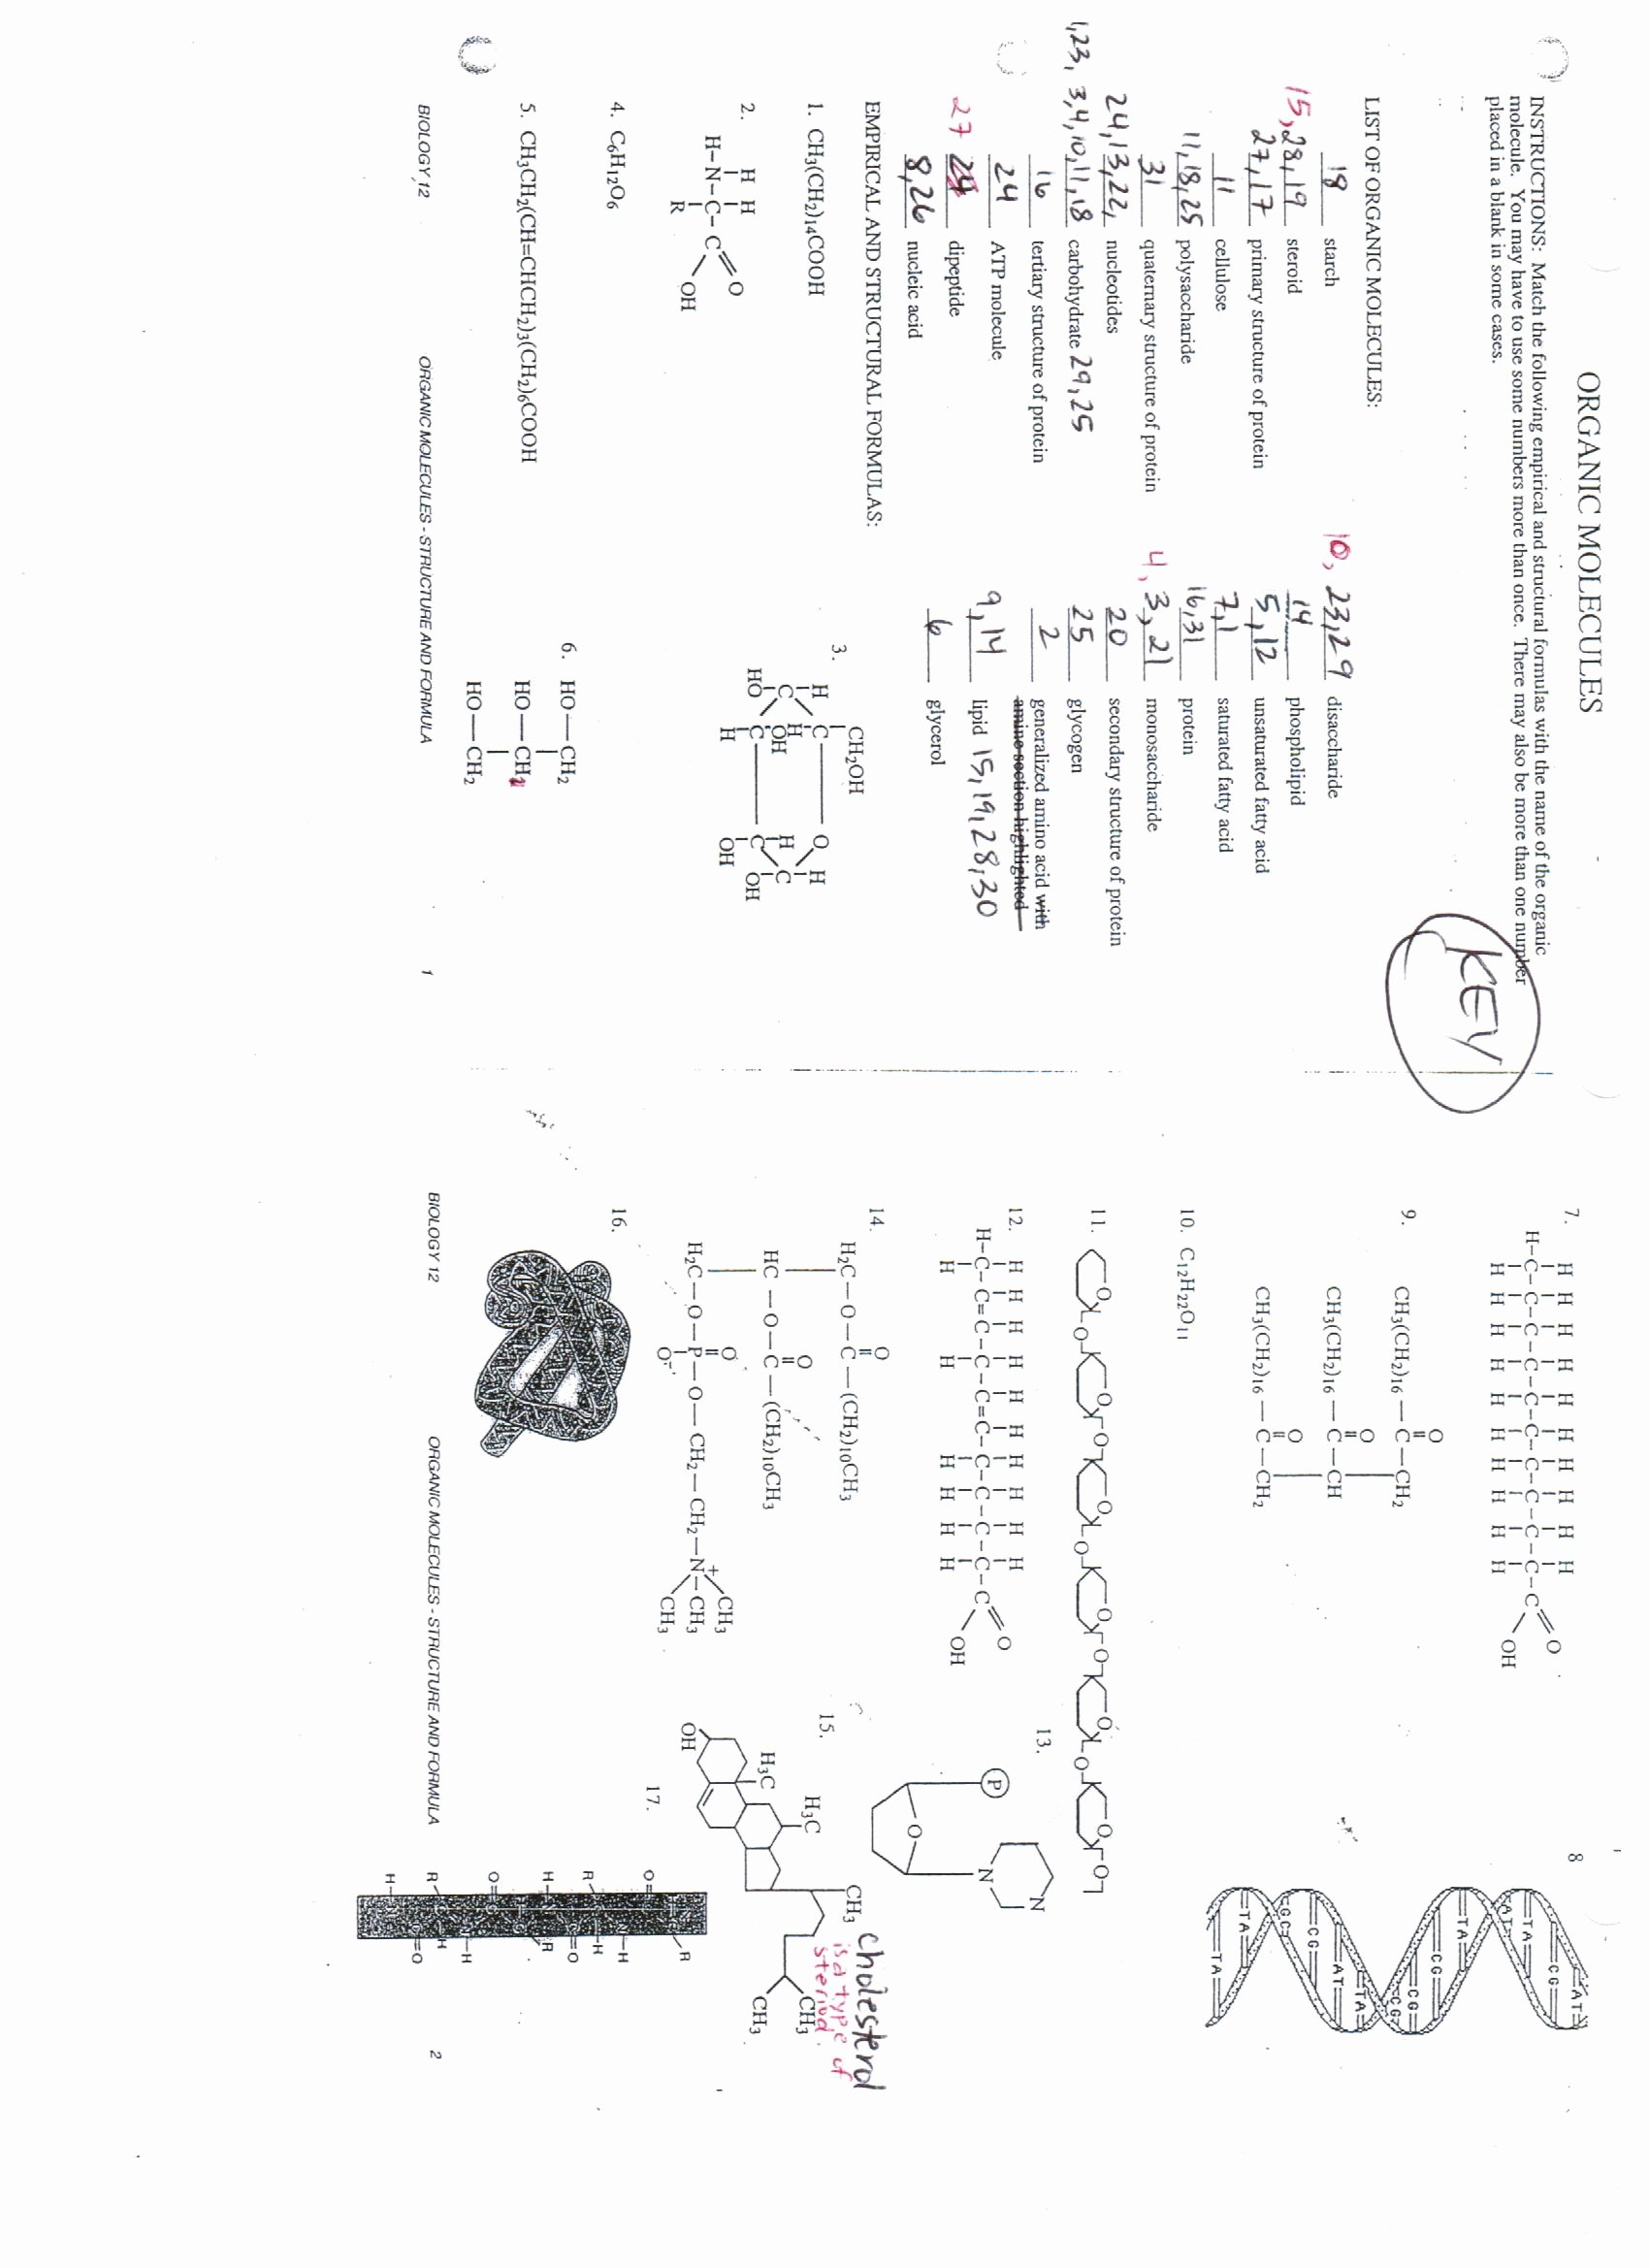 Nucleic Acid Worksheet Answers Fresh Answers Lipids Nucleic Acids and organic Molecules